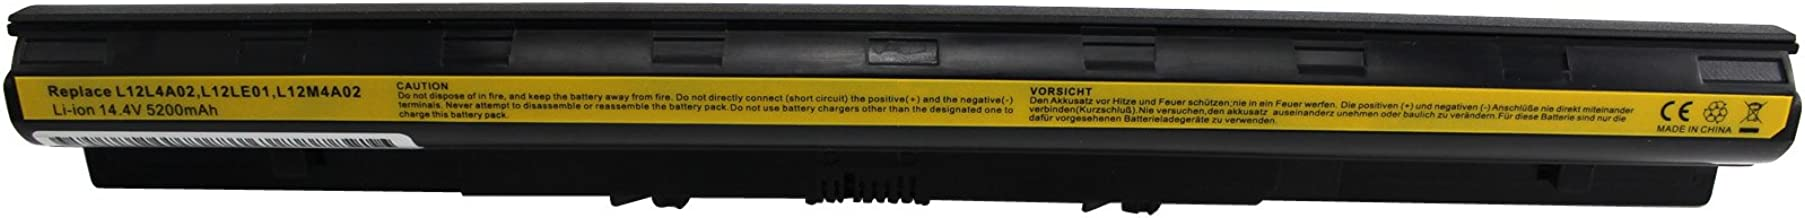 Gomarty 14.4V 5200MAH Laptop Battery for LENOVO G400s G405s G410s G500s G505s G510s S410p S510p Z710 Touch Series,Compatible Part Numbers L12L4A02 L12L4E01 L12M4A02 L12M4E01 L12S4A02 L12S4E01